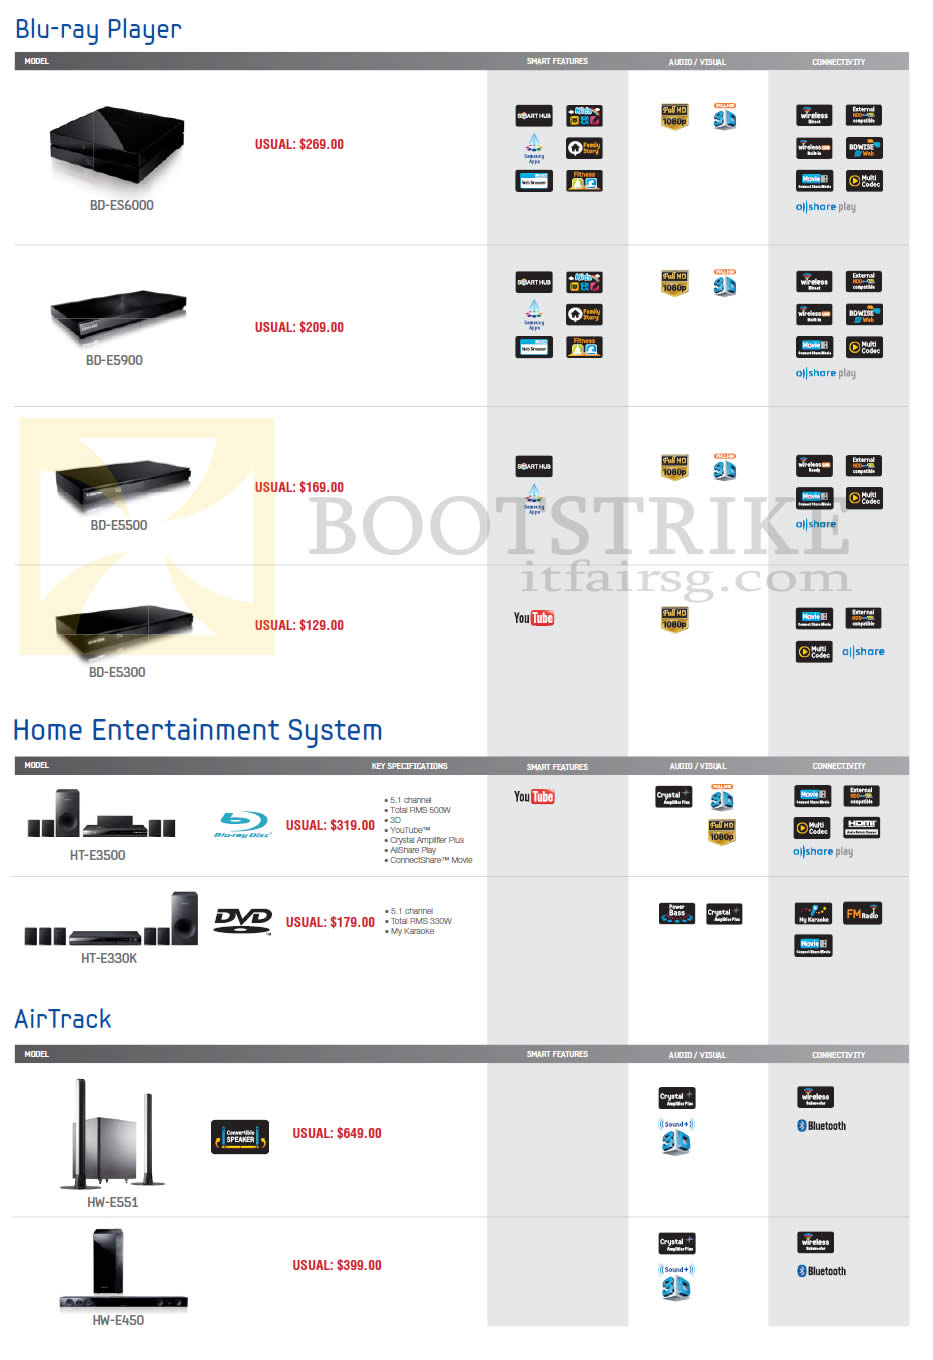 SITEX 2012 price list image brochure of Samsung Audio House Blu-Ray Player, Home Entertainment System, AirTrack